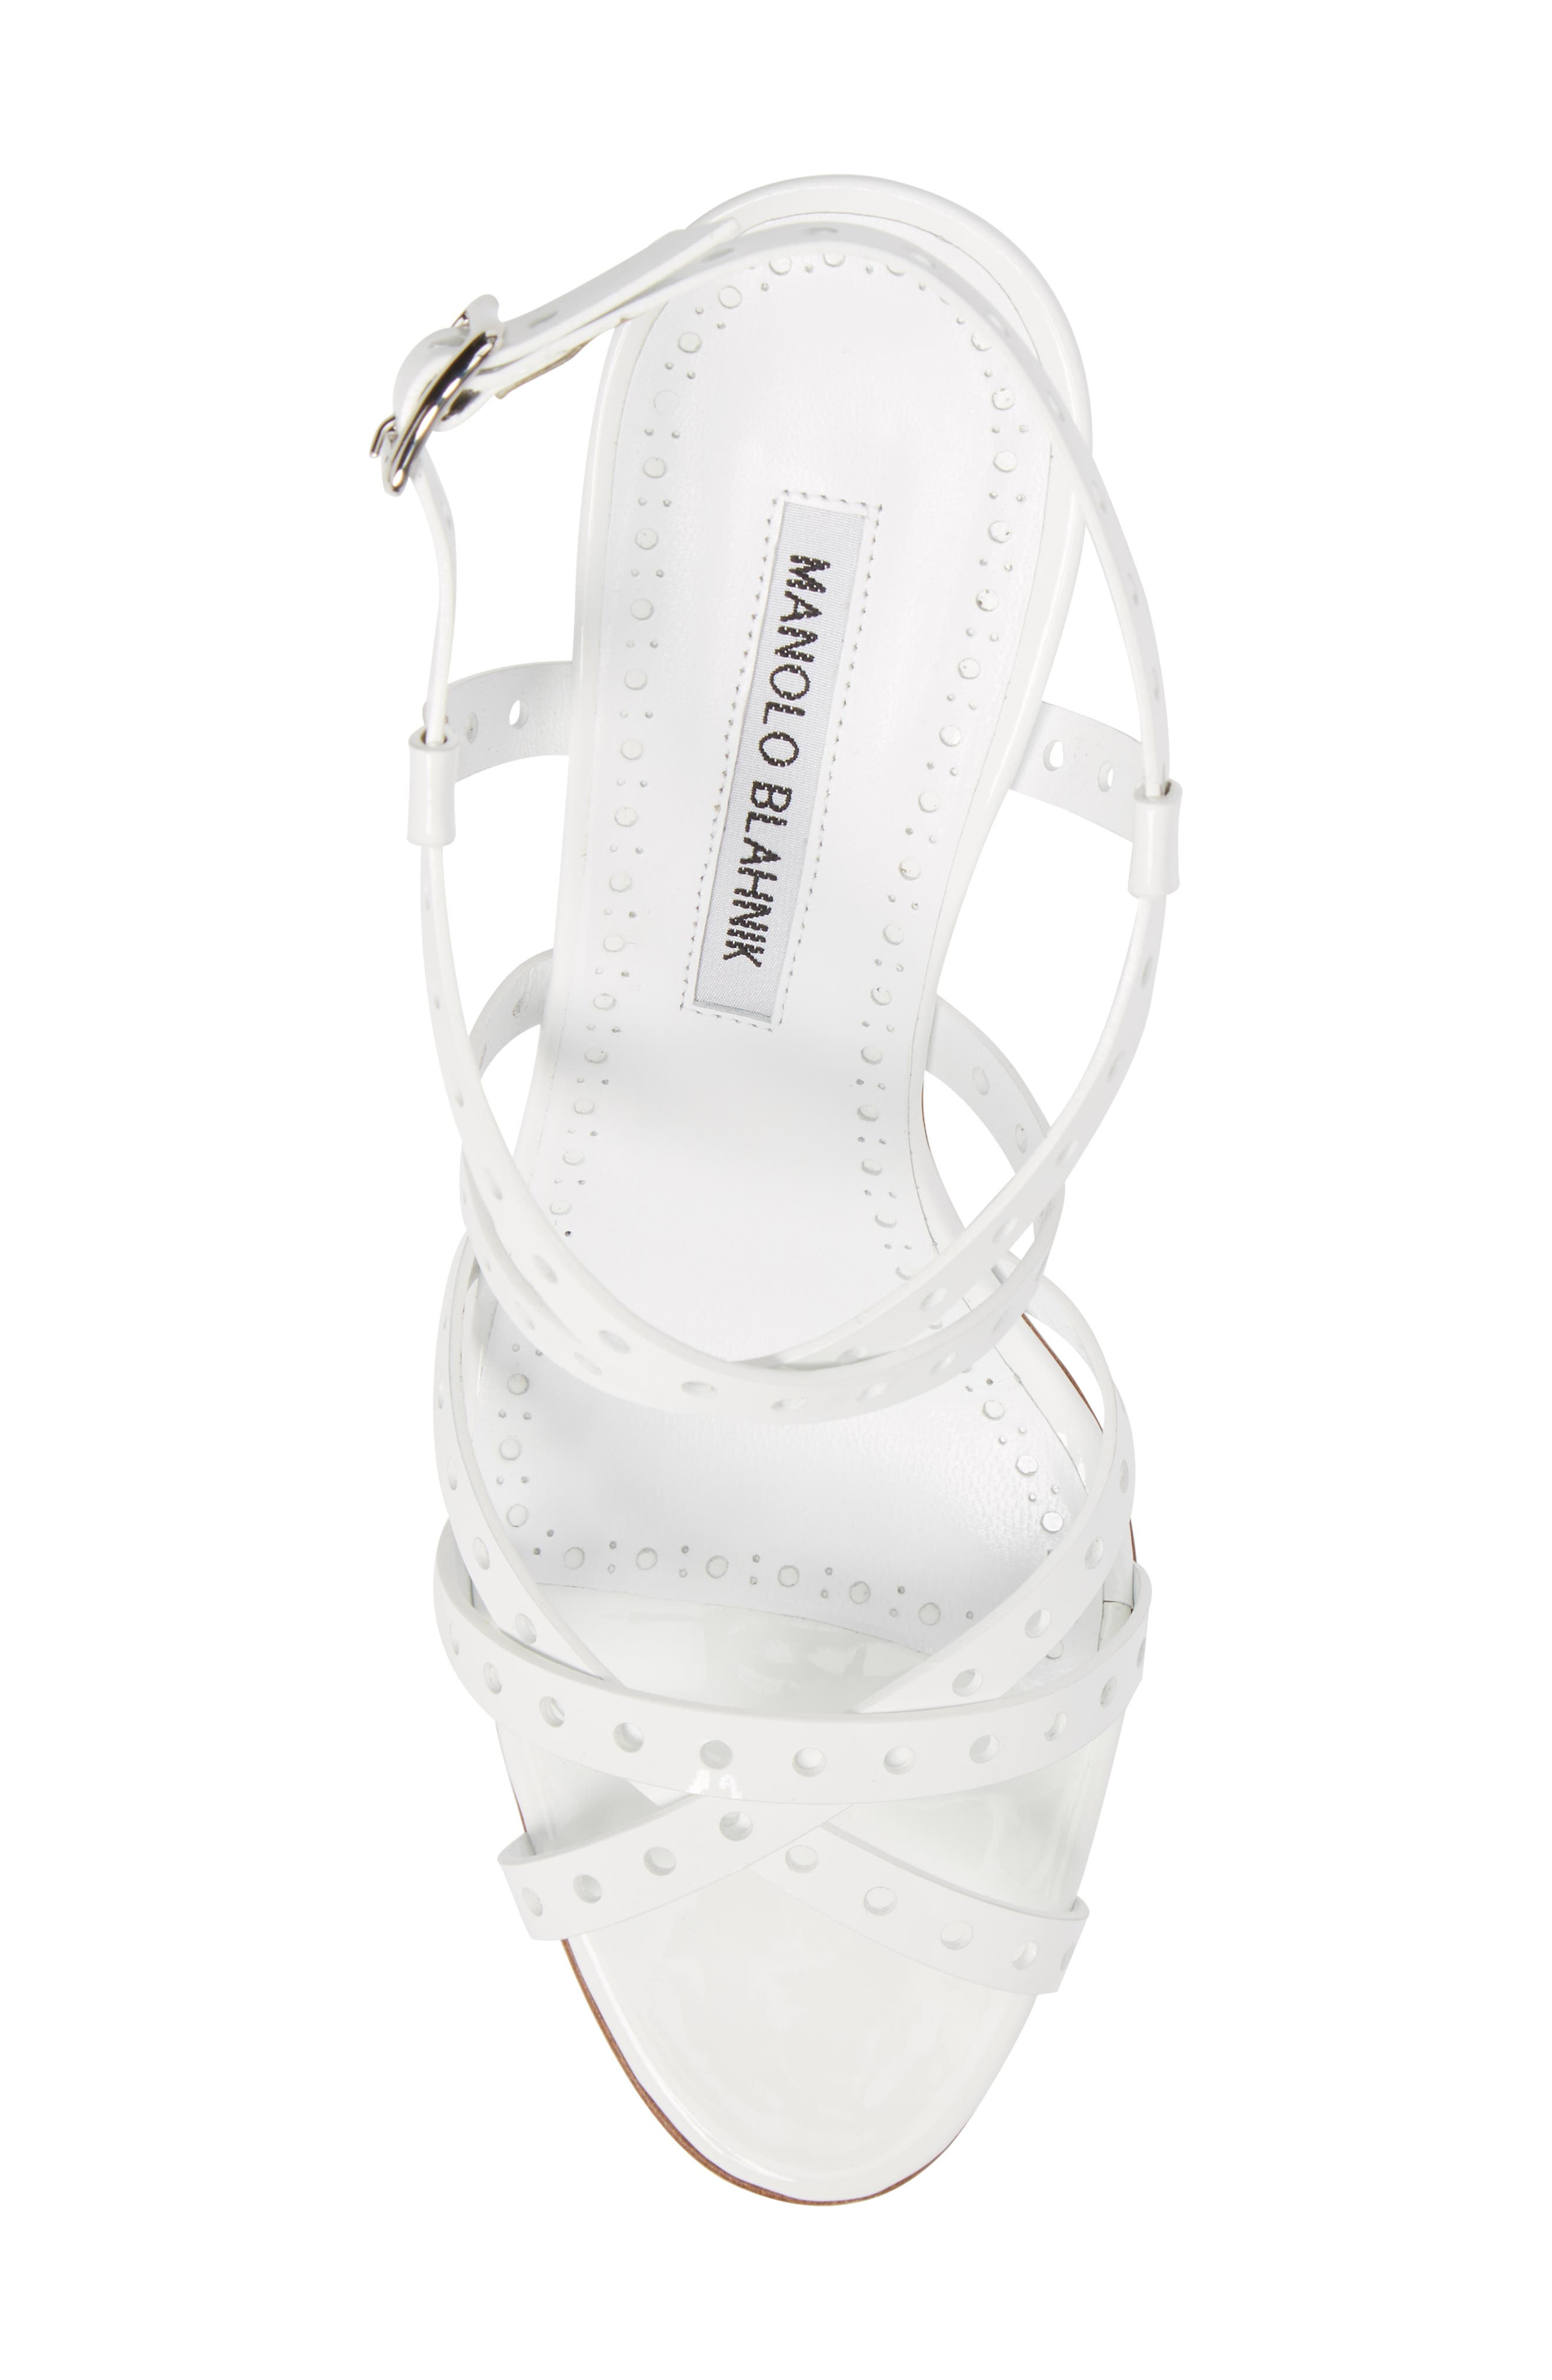 Demure Perforated Strappy Sandal,                             Alternate thumbnail 5, color,                             100